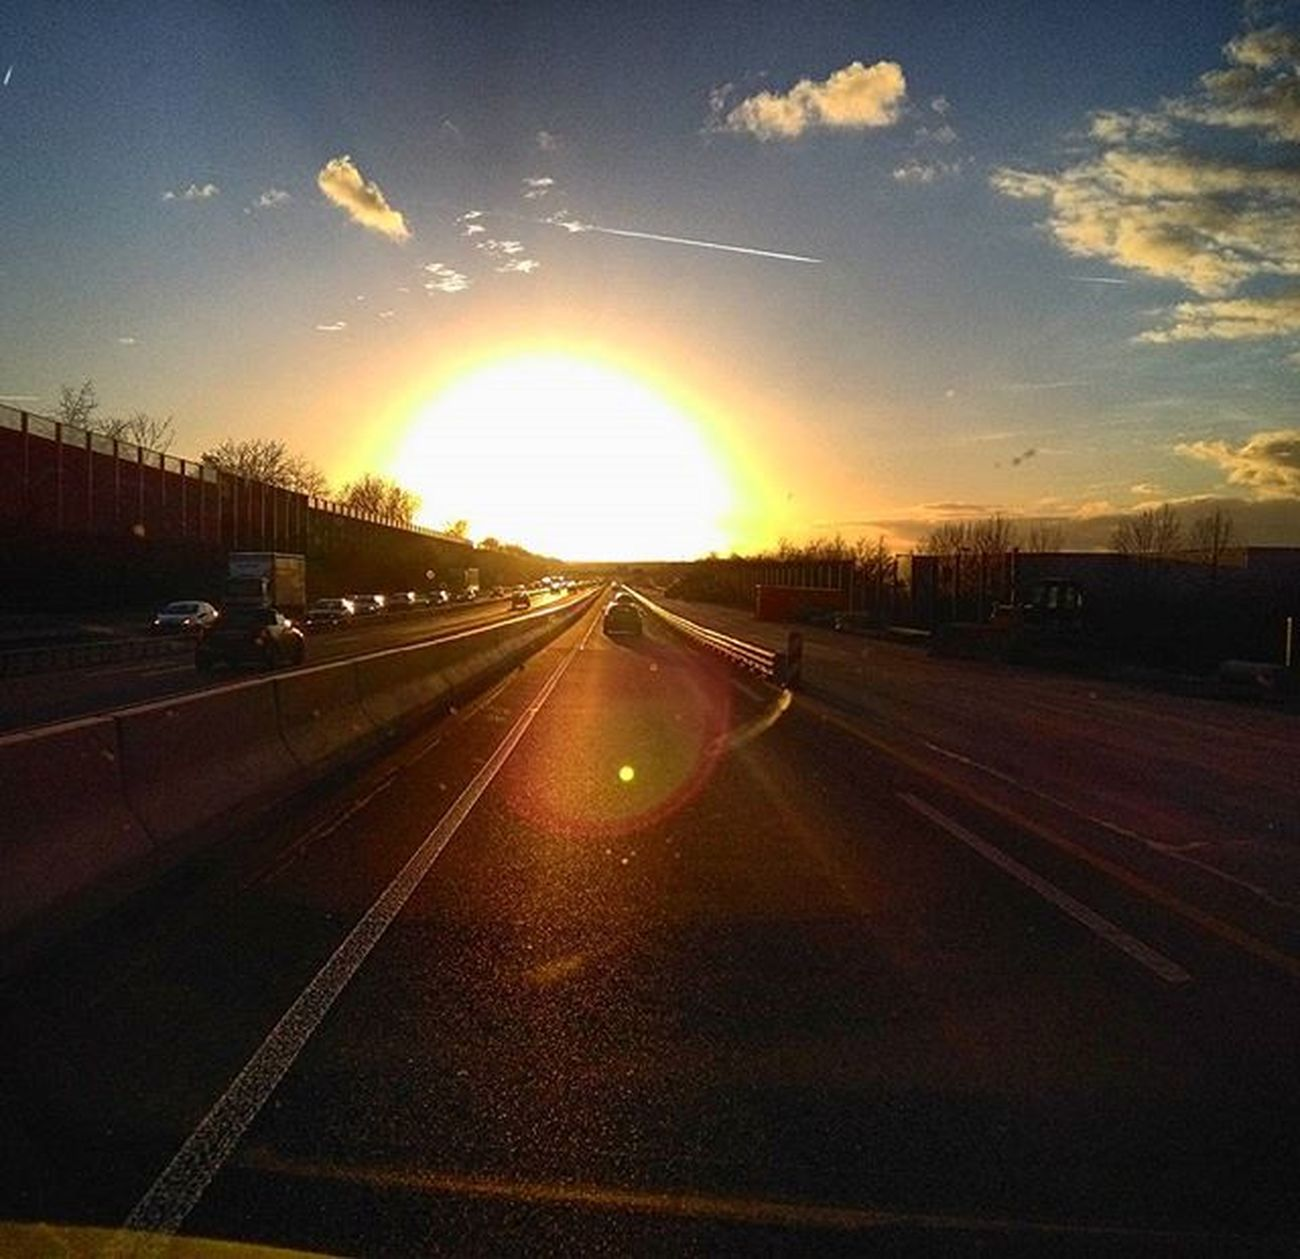 A7 Autobahn Highway Sun Sunset Skyisburning Sky Photoarena_sunset Heaven Cloud Clouds Roadtrip Road Driving Drivinghome Drive Street